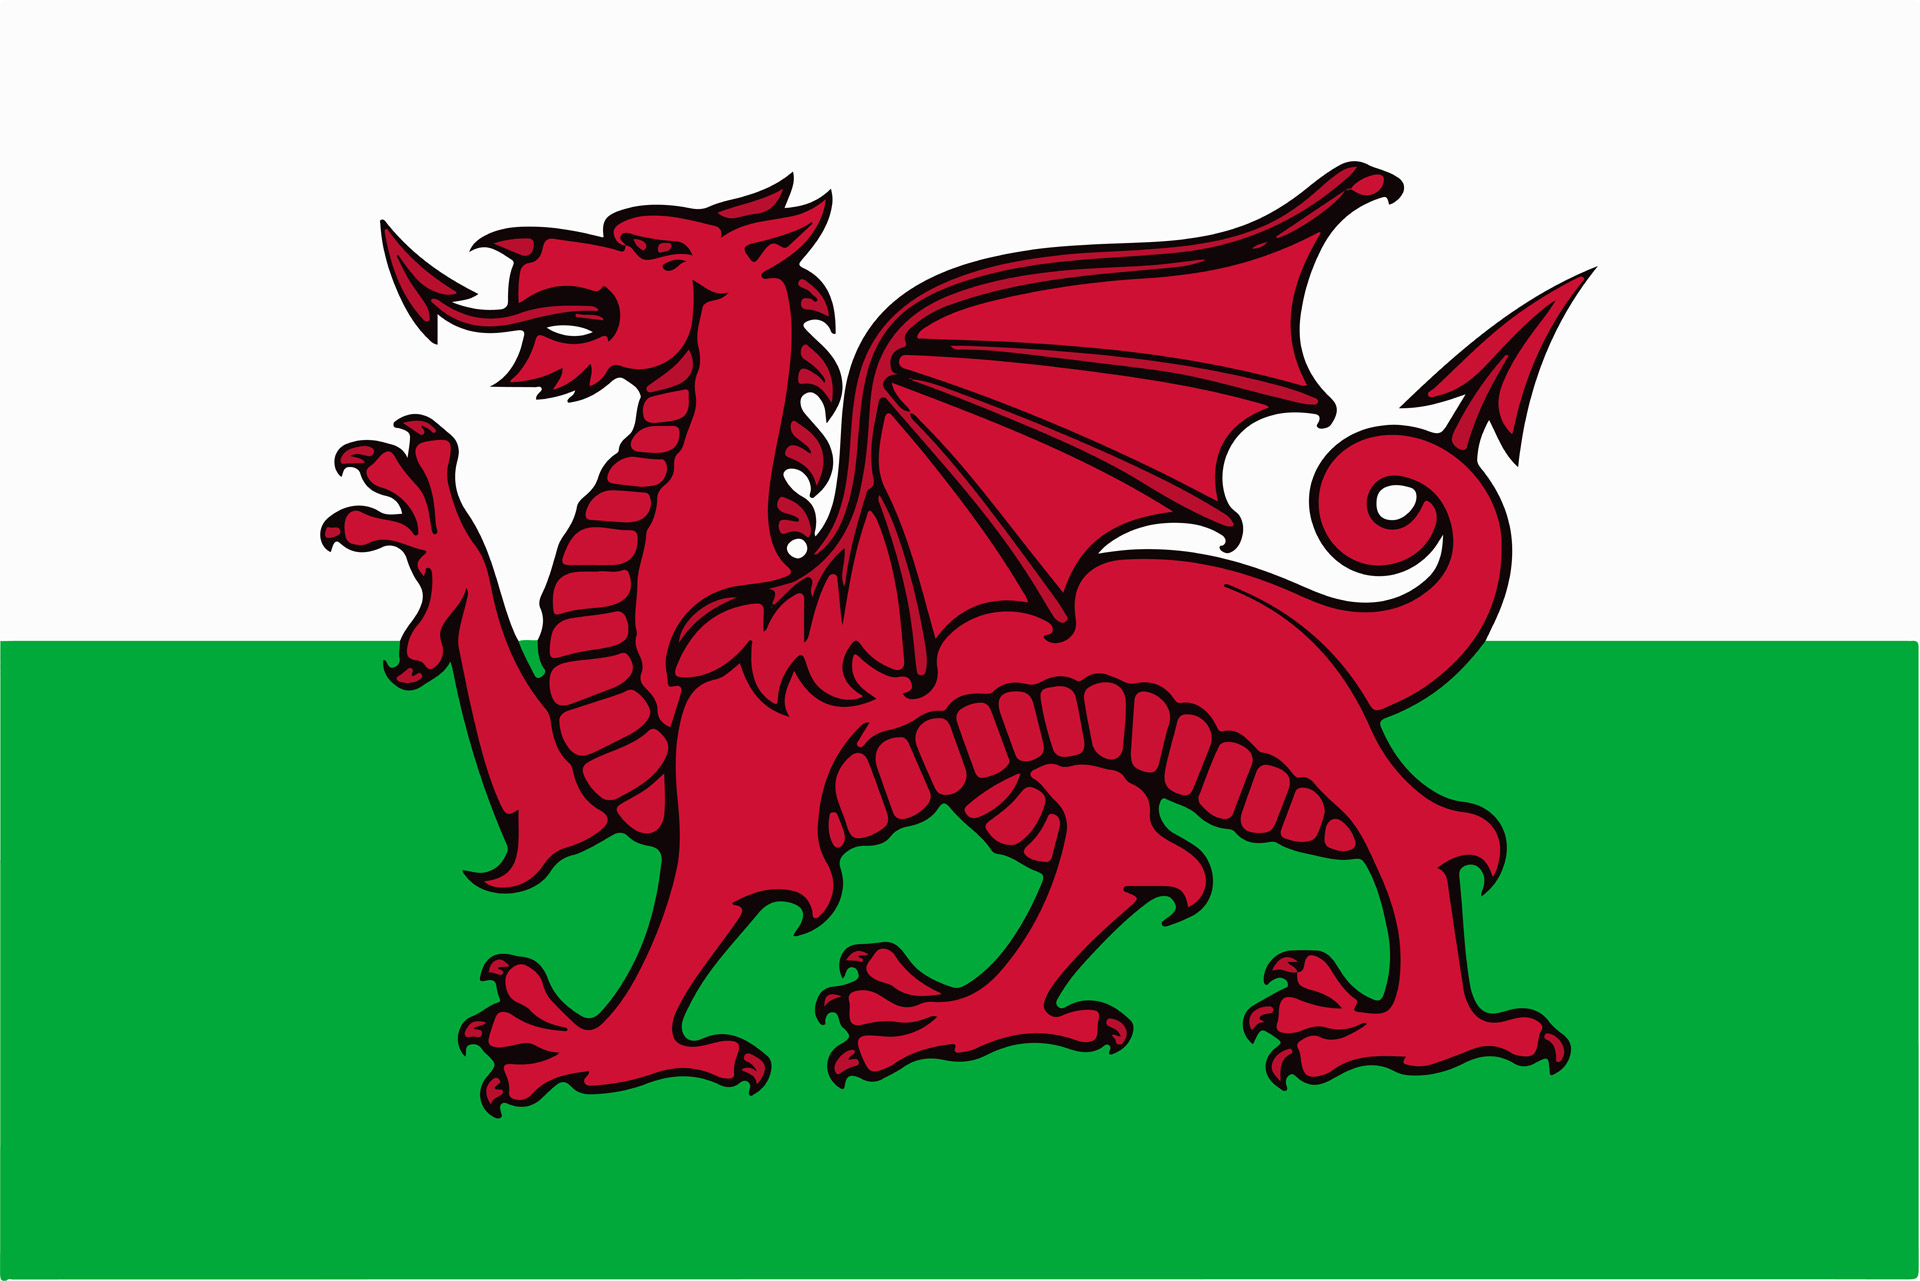 Welsh Flag Free Stock Photo - Public Domain Pictures